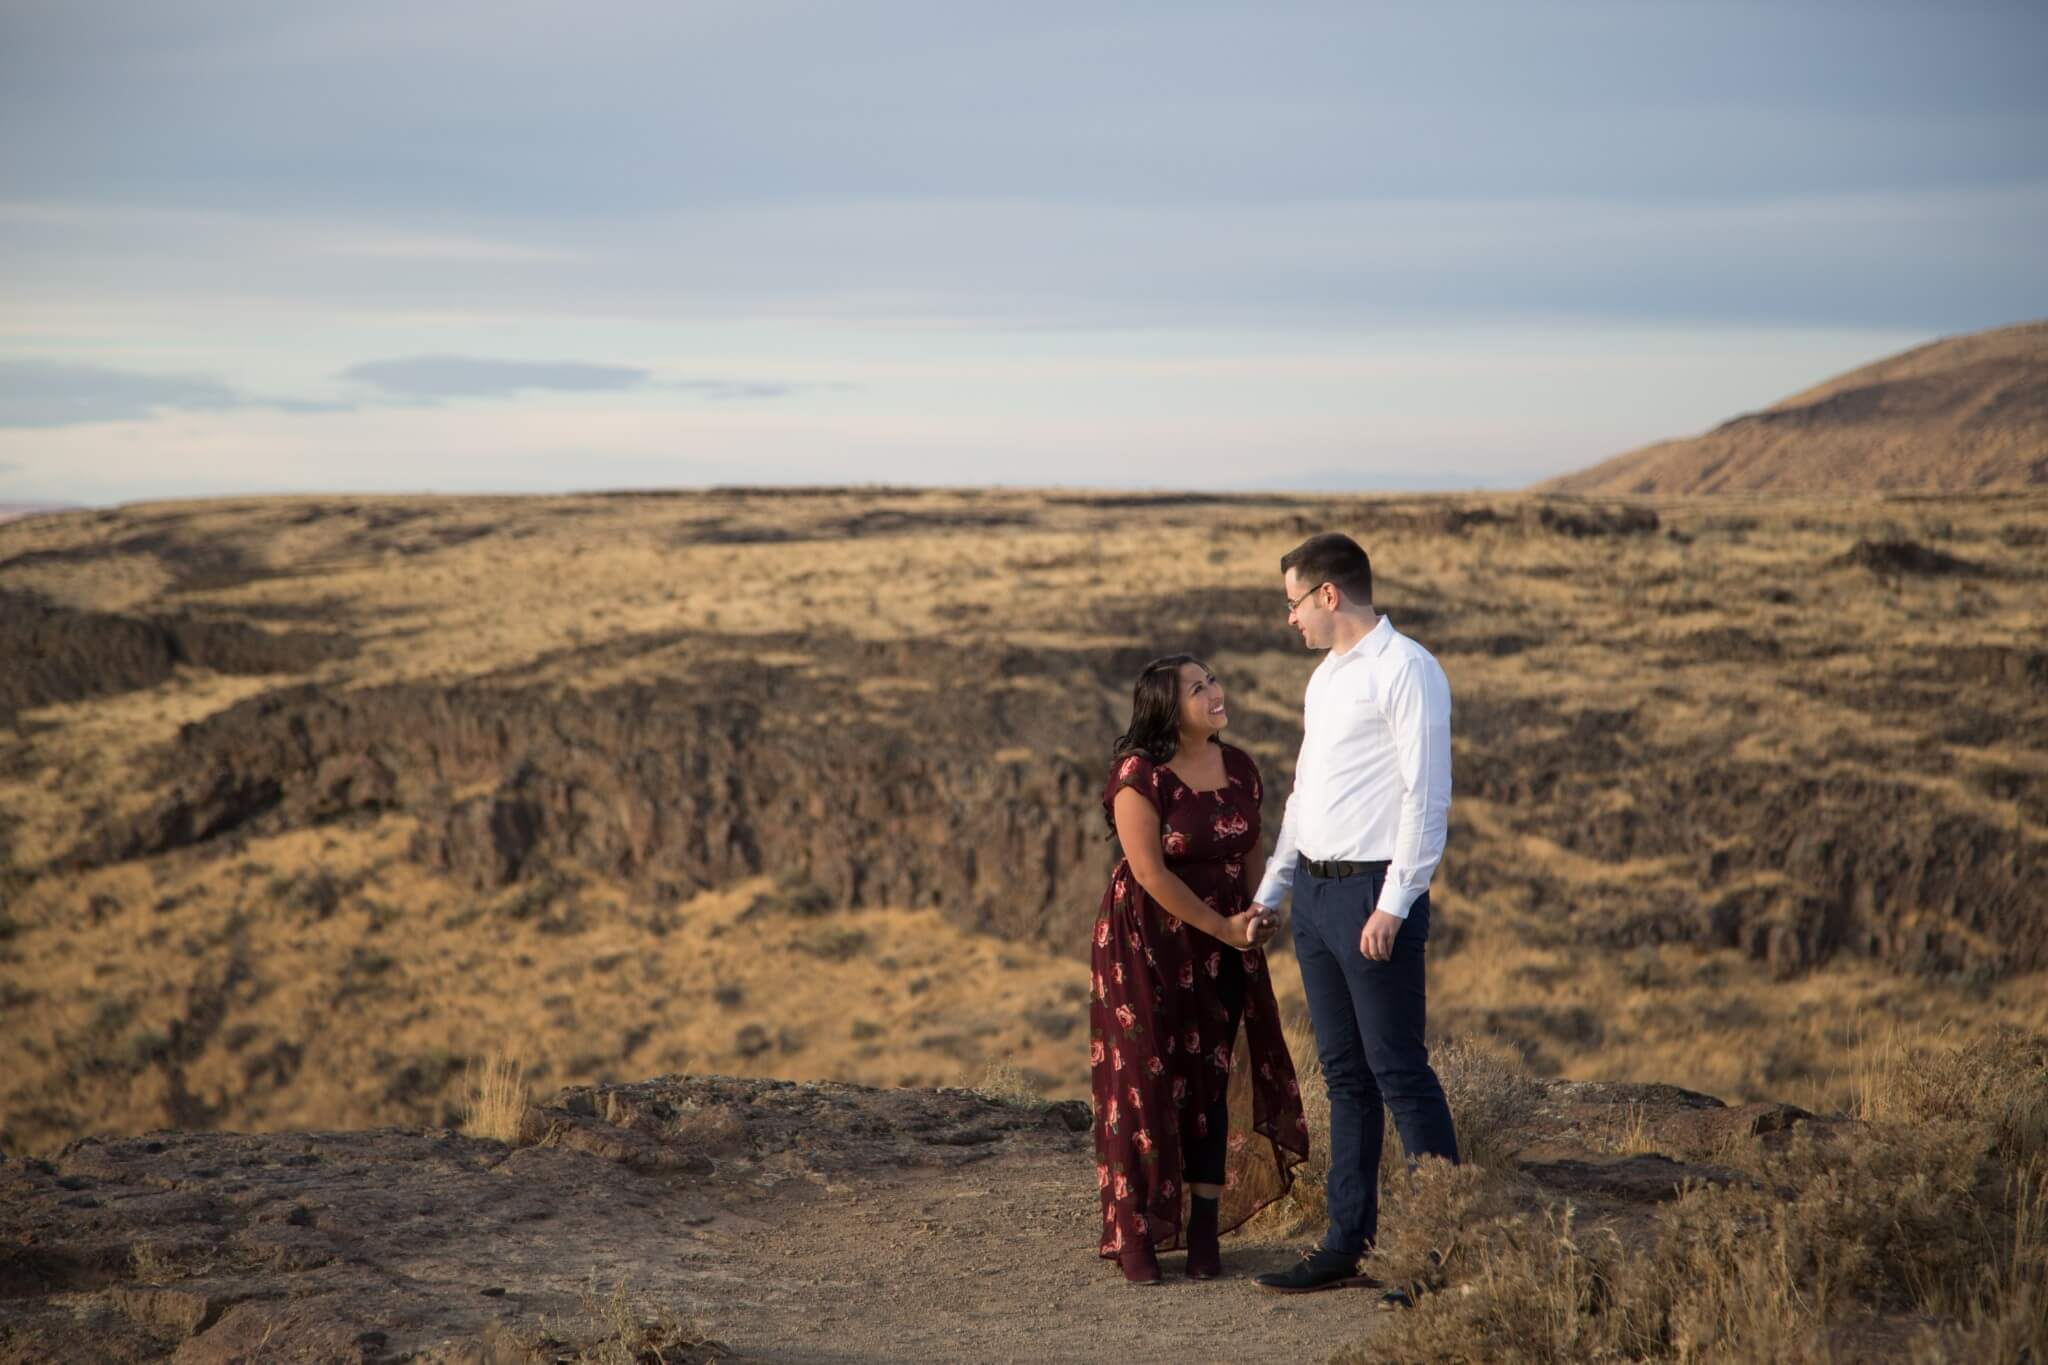 Lesly & Michael Vantage Engagement by Bill Weisgerber Spokane Photographer (18 of 71).jpg